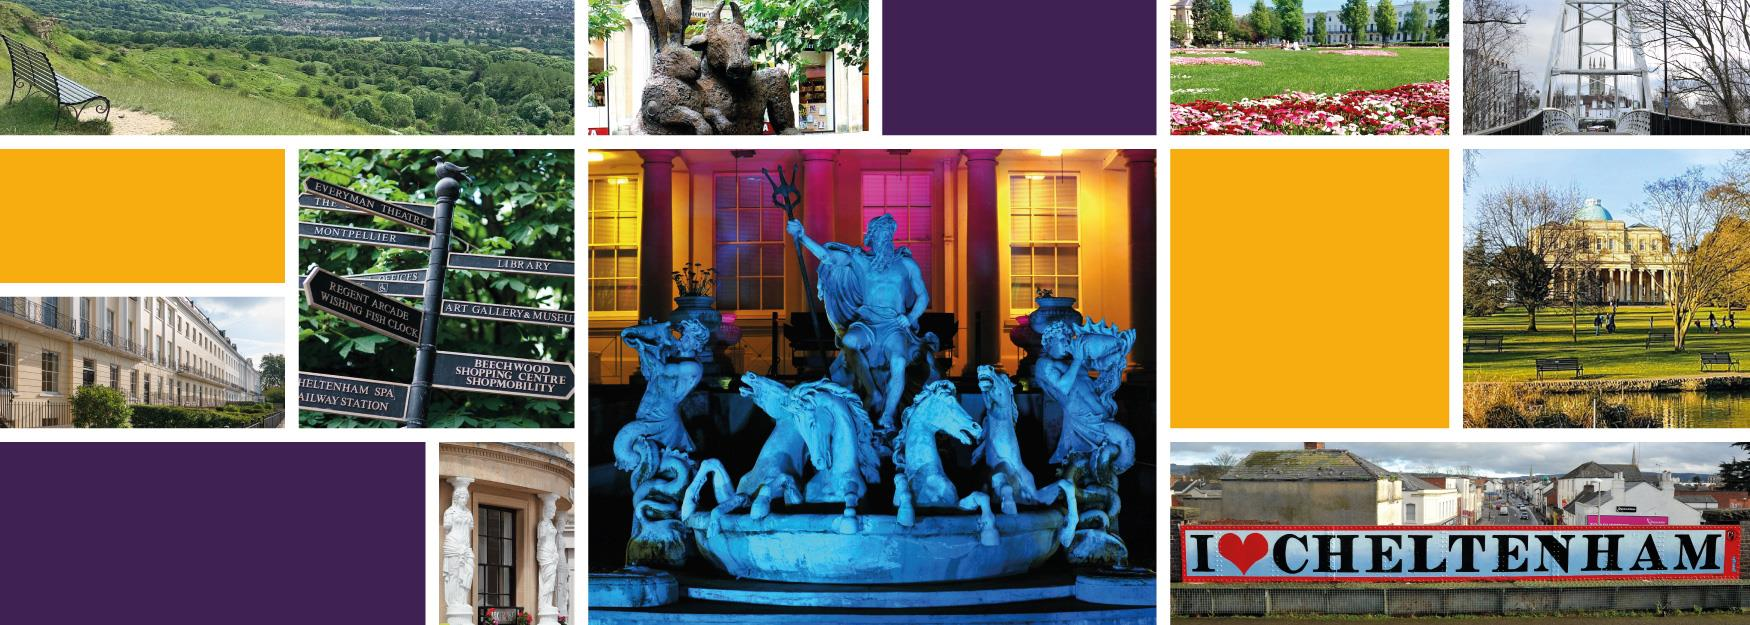 Collage of photographs and colours showing some of the best things to see, do and explore in and around Cheltenham